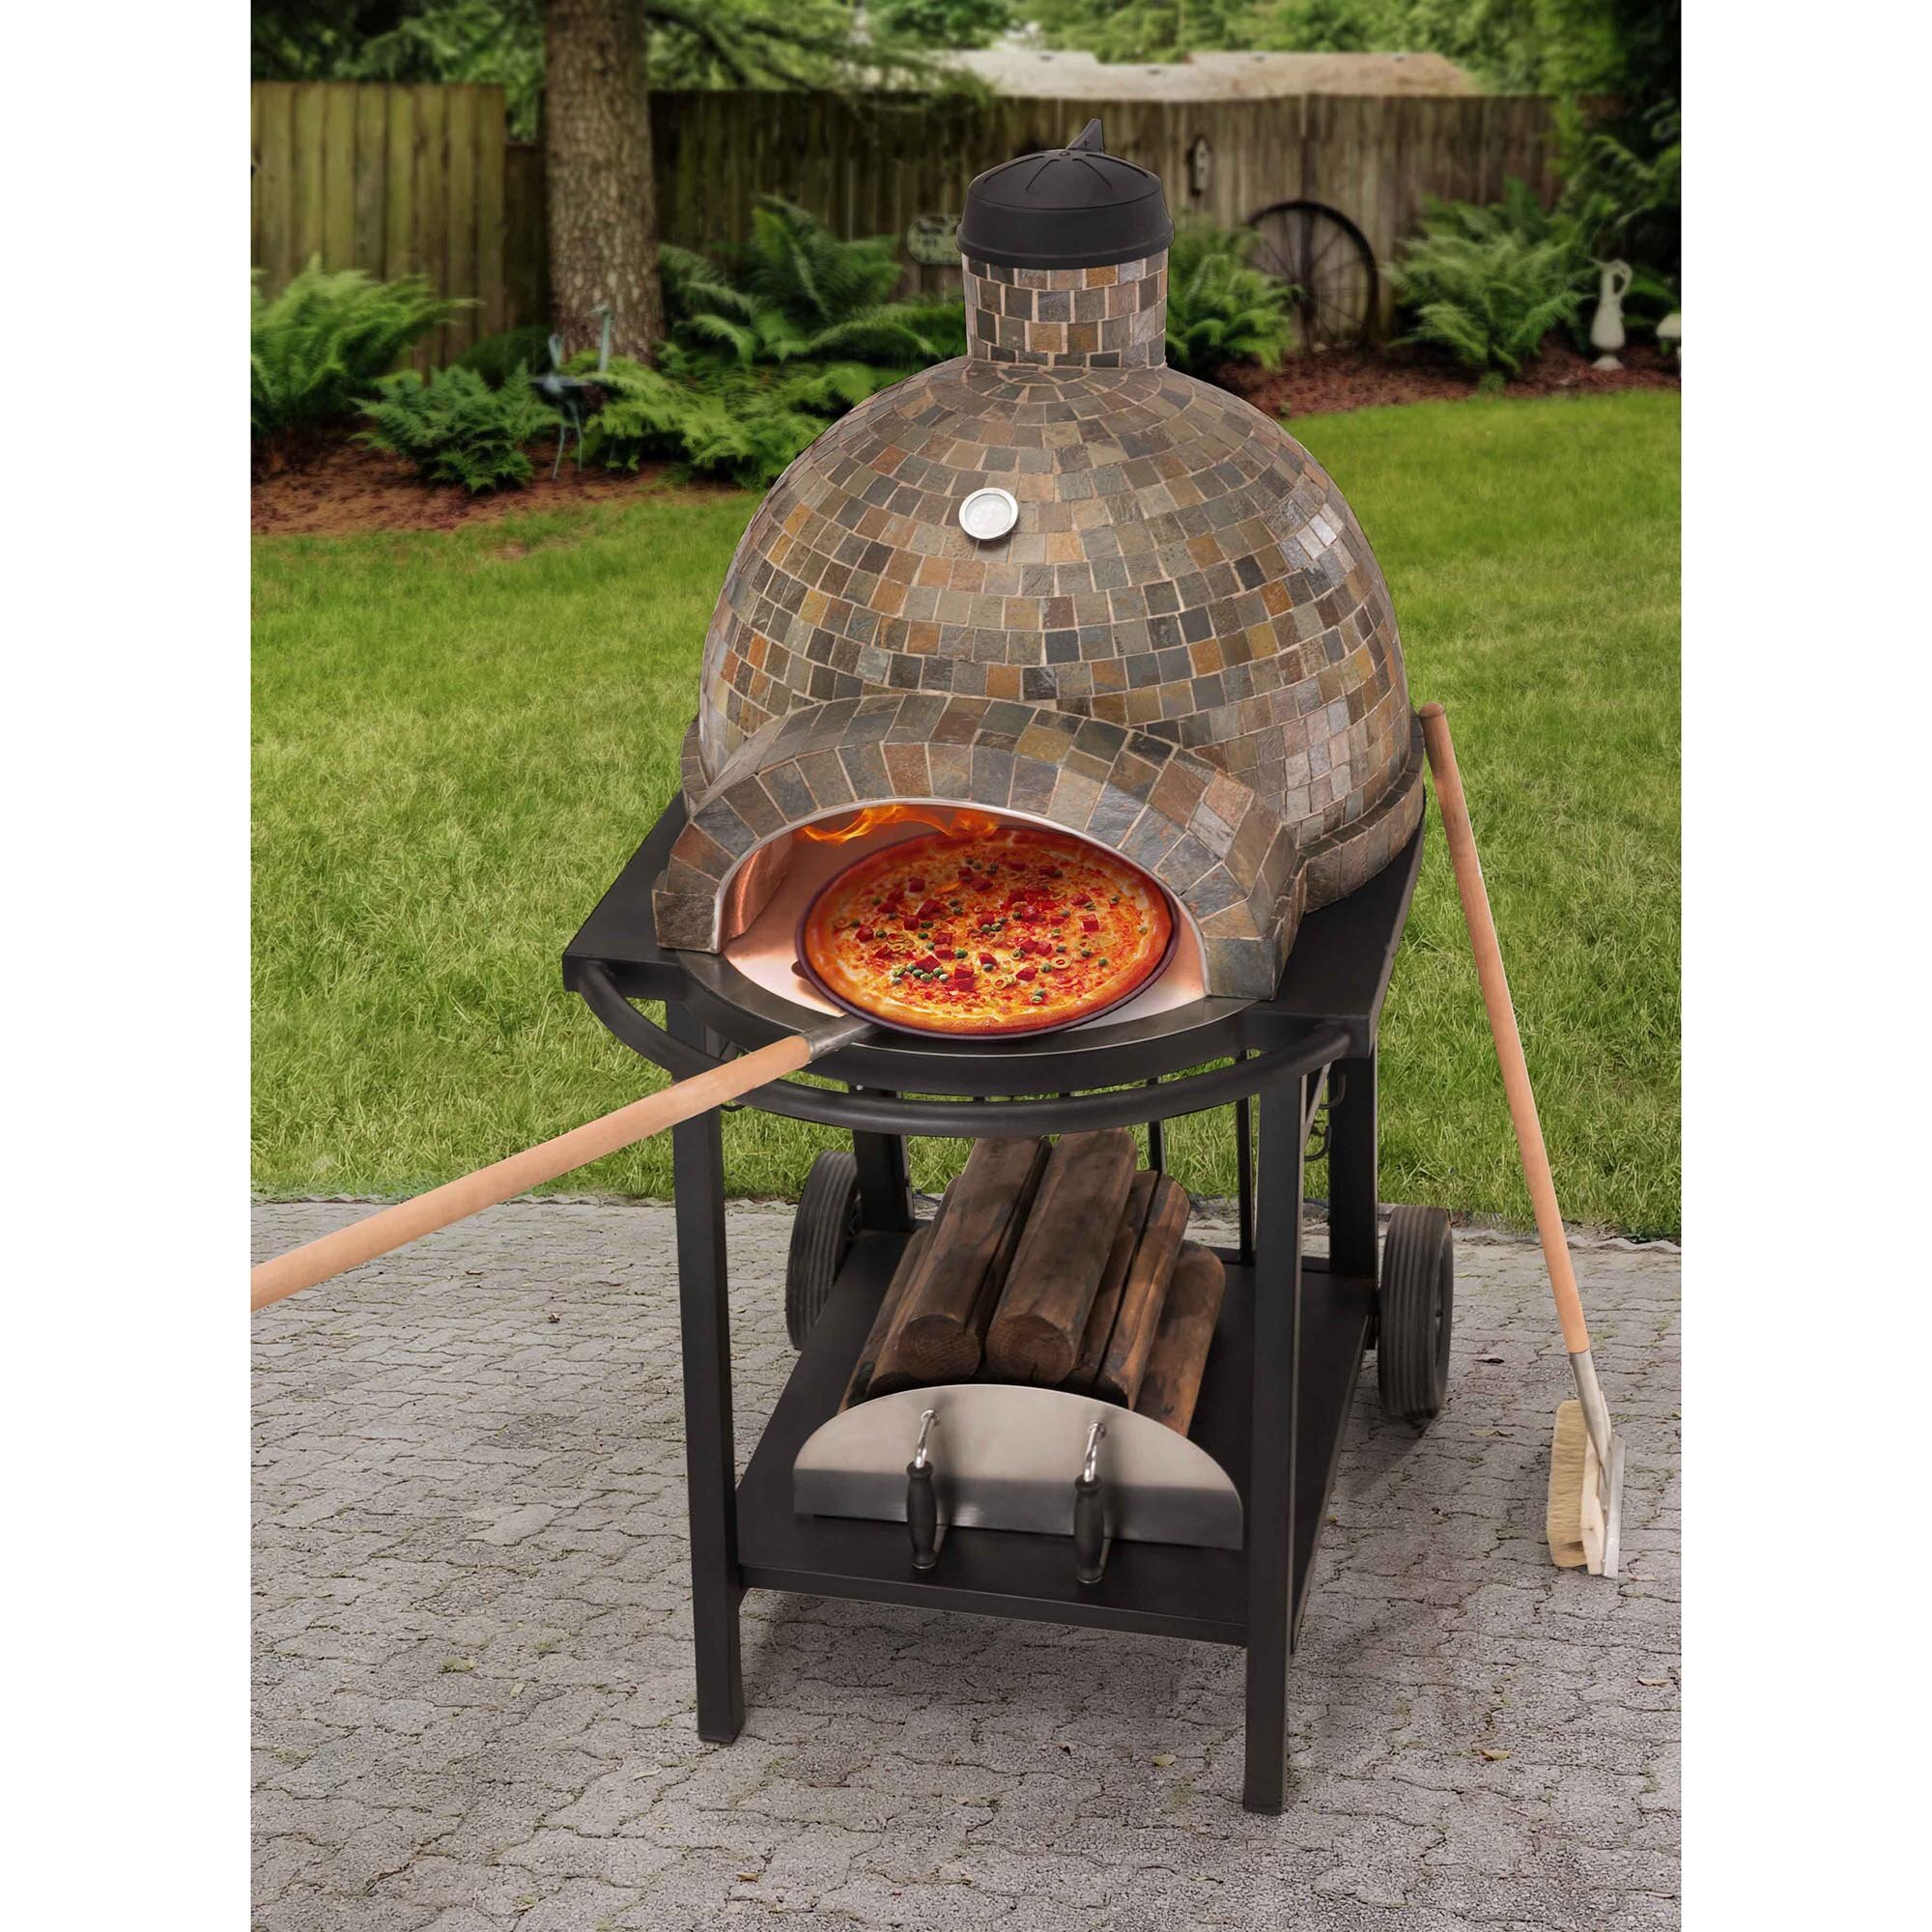 Mediterranean wood fired pizza oven - Sunjoy Wood Fired Pizza Oven